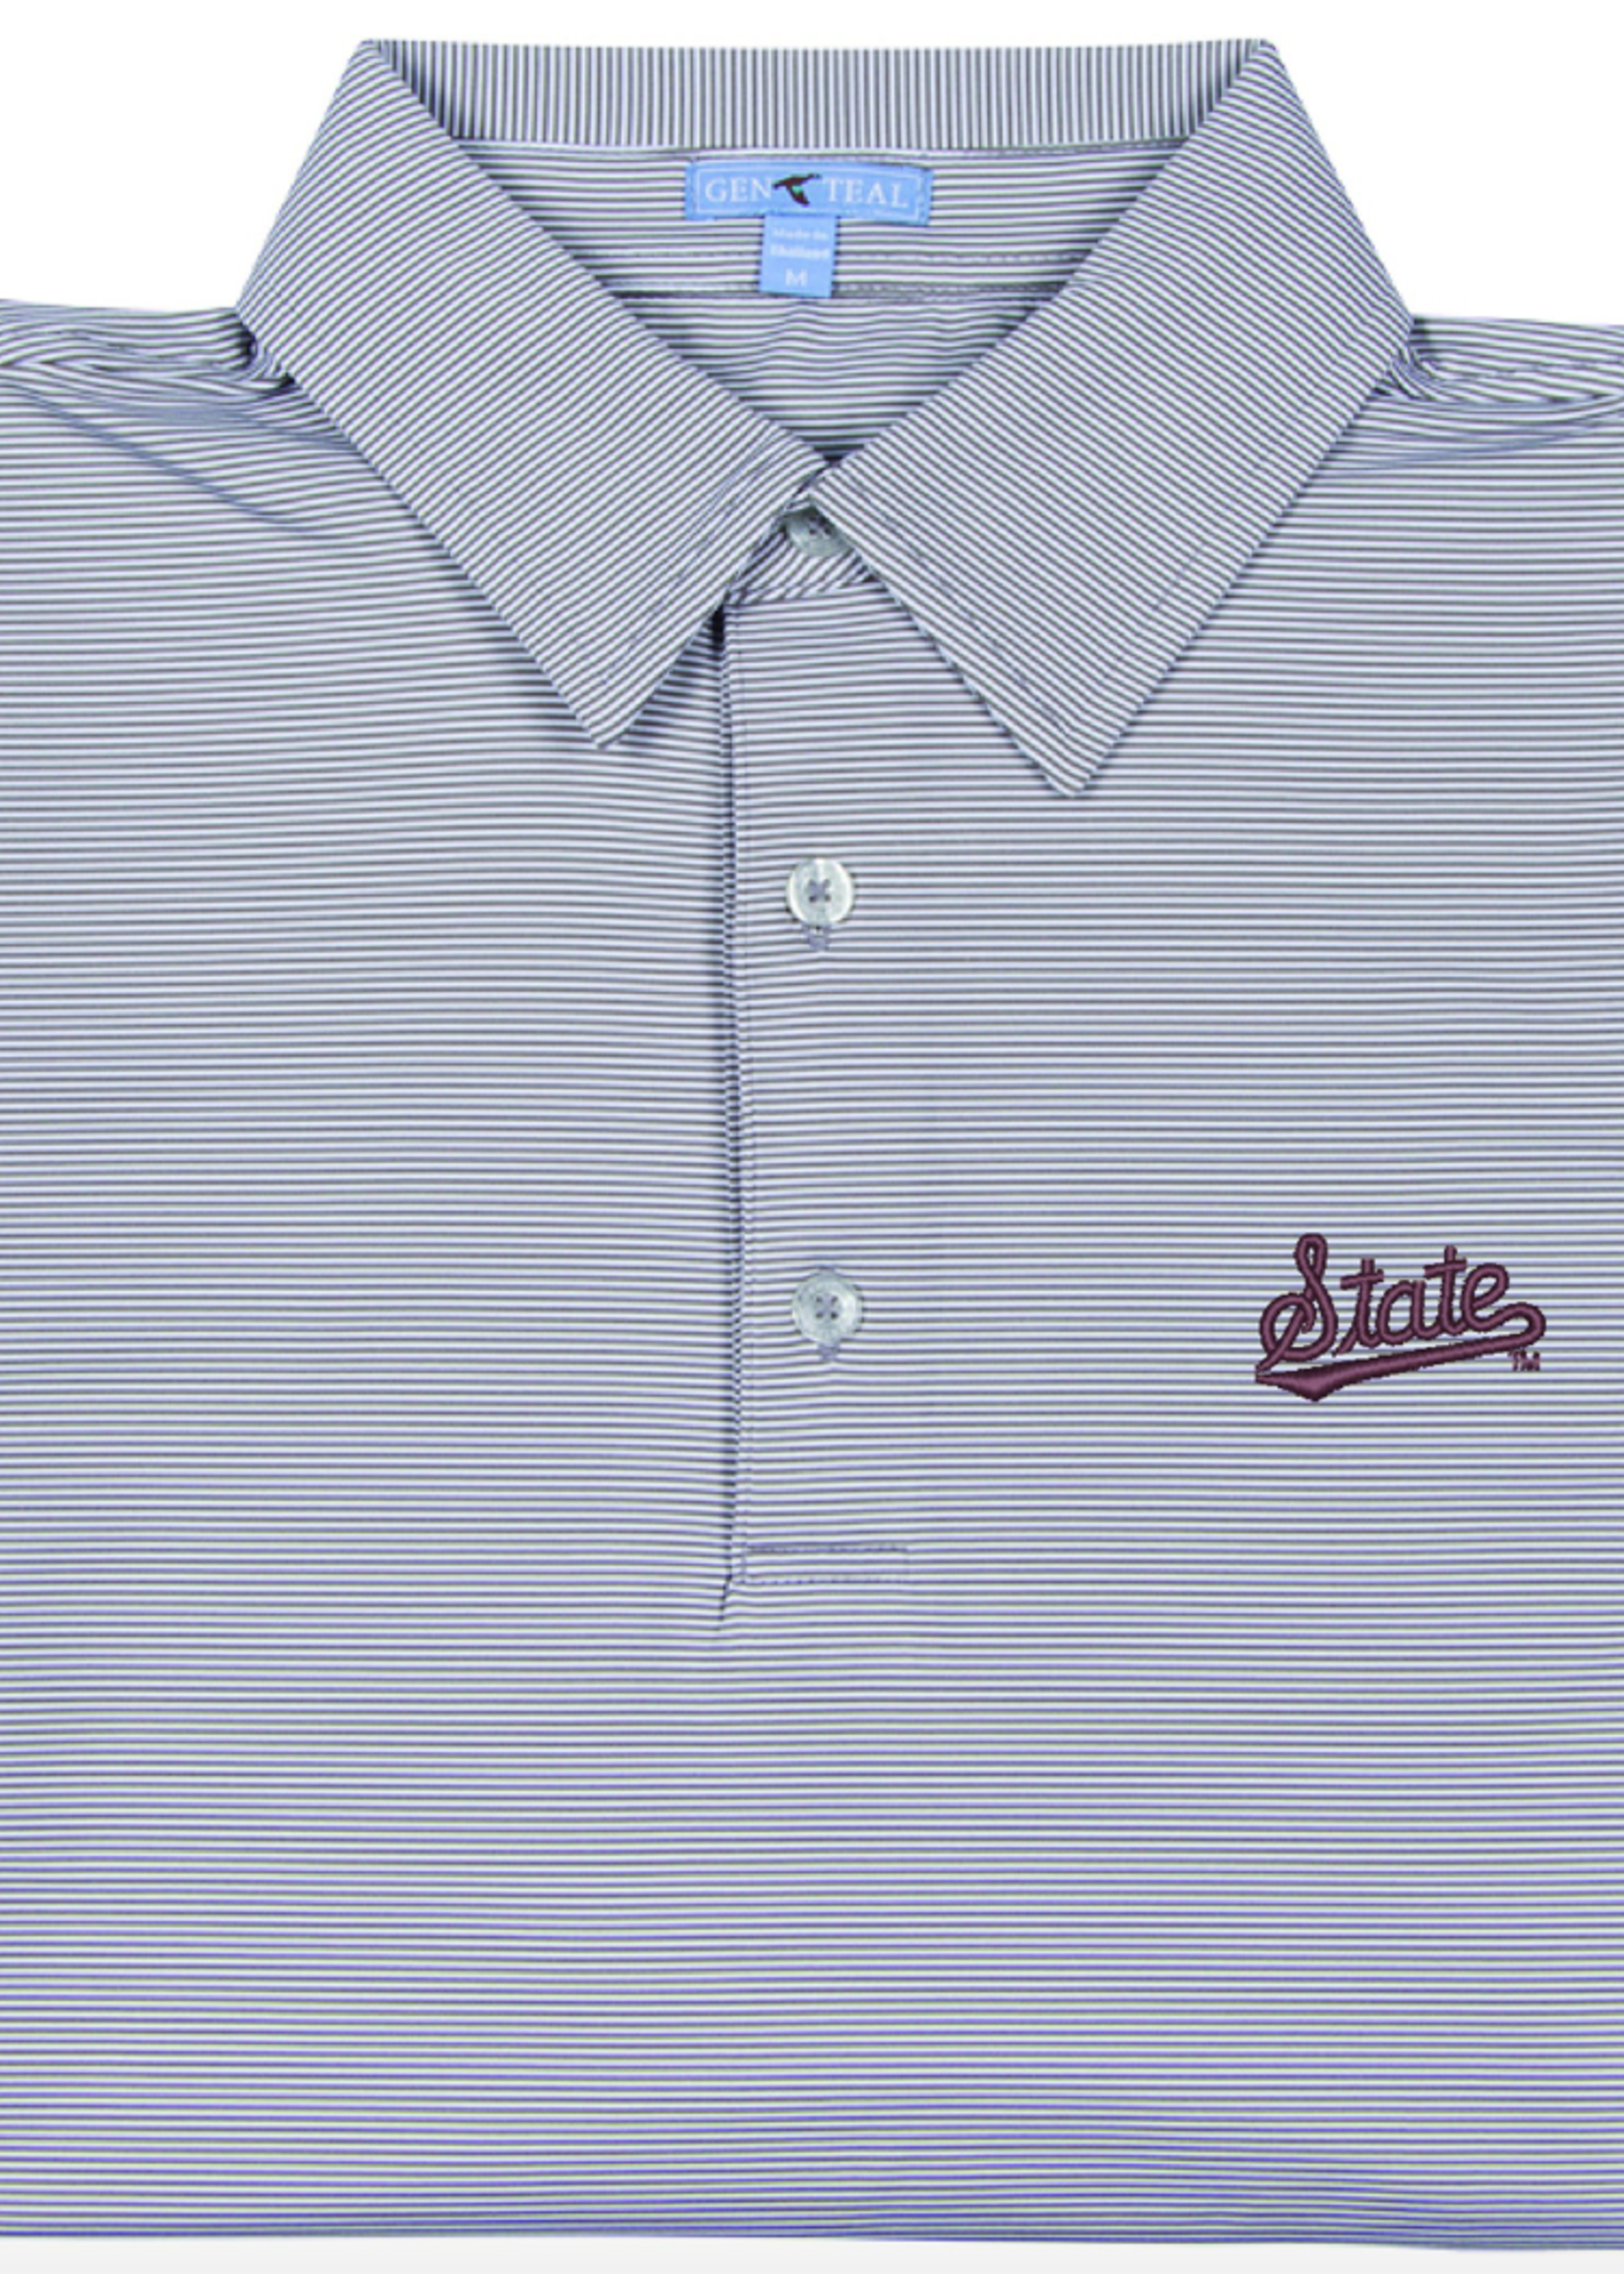 GenTeal Apparel Mississippi State Script Charcoal Pinstripe Polo